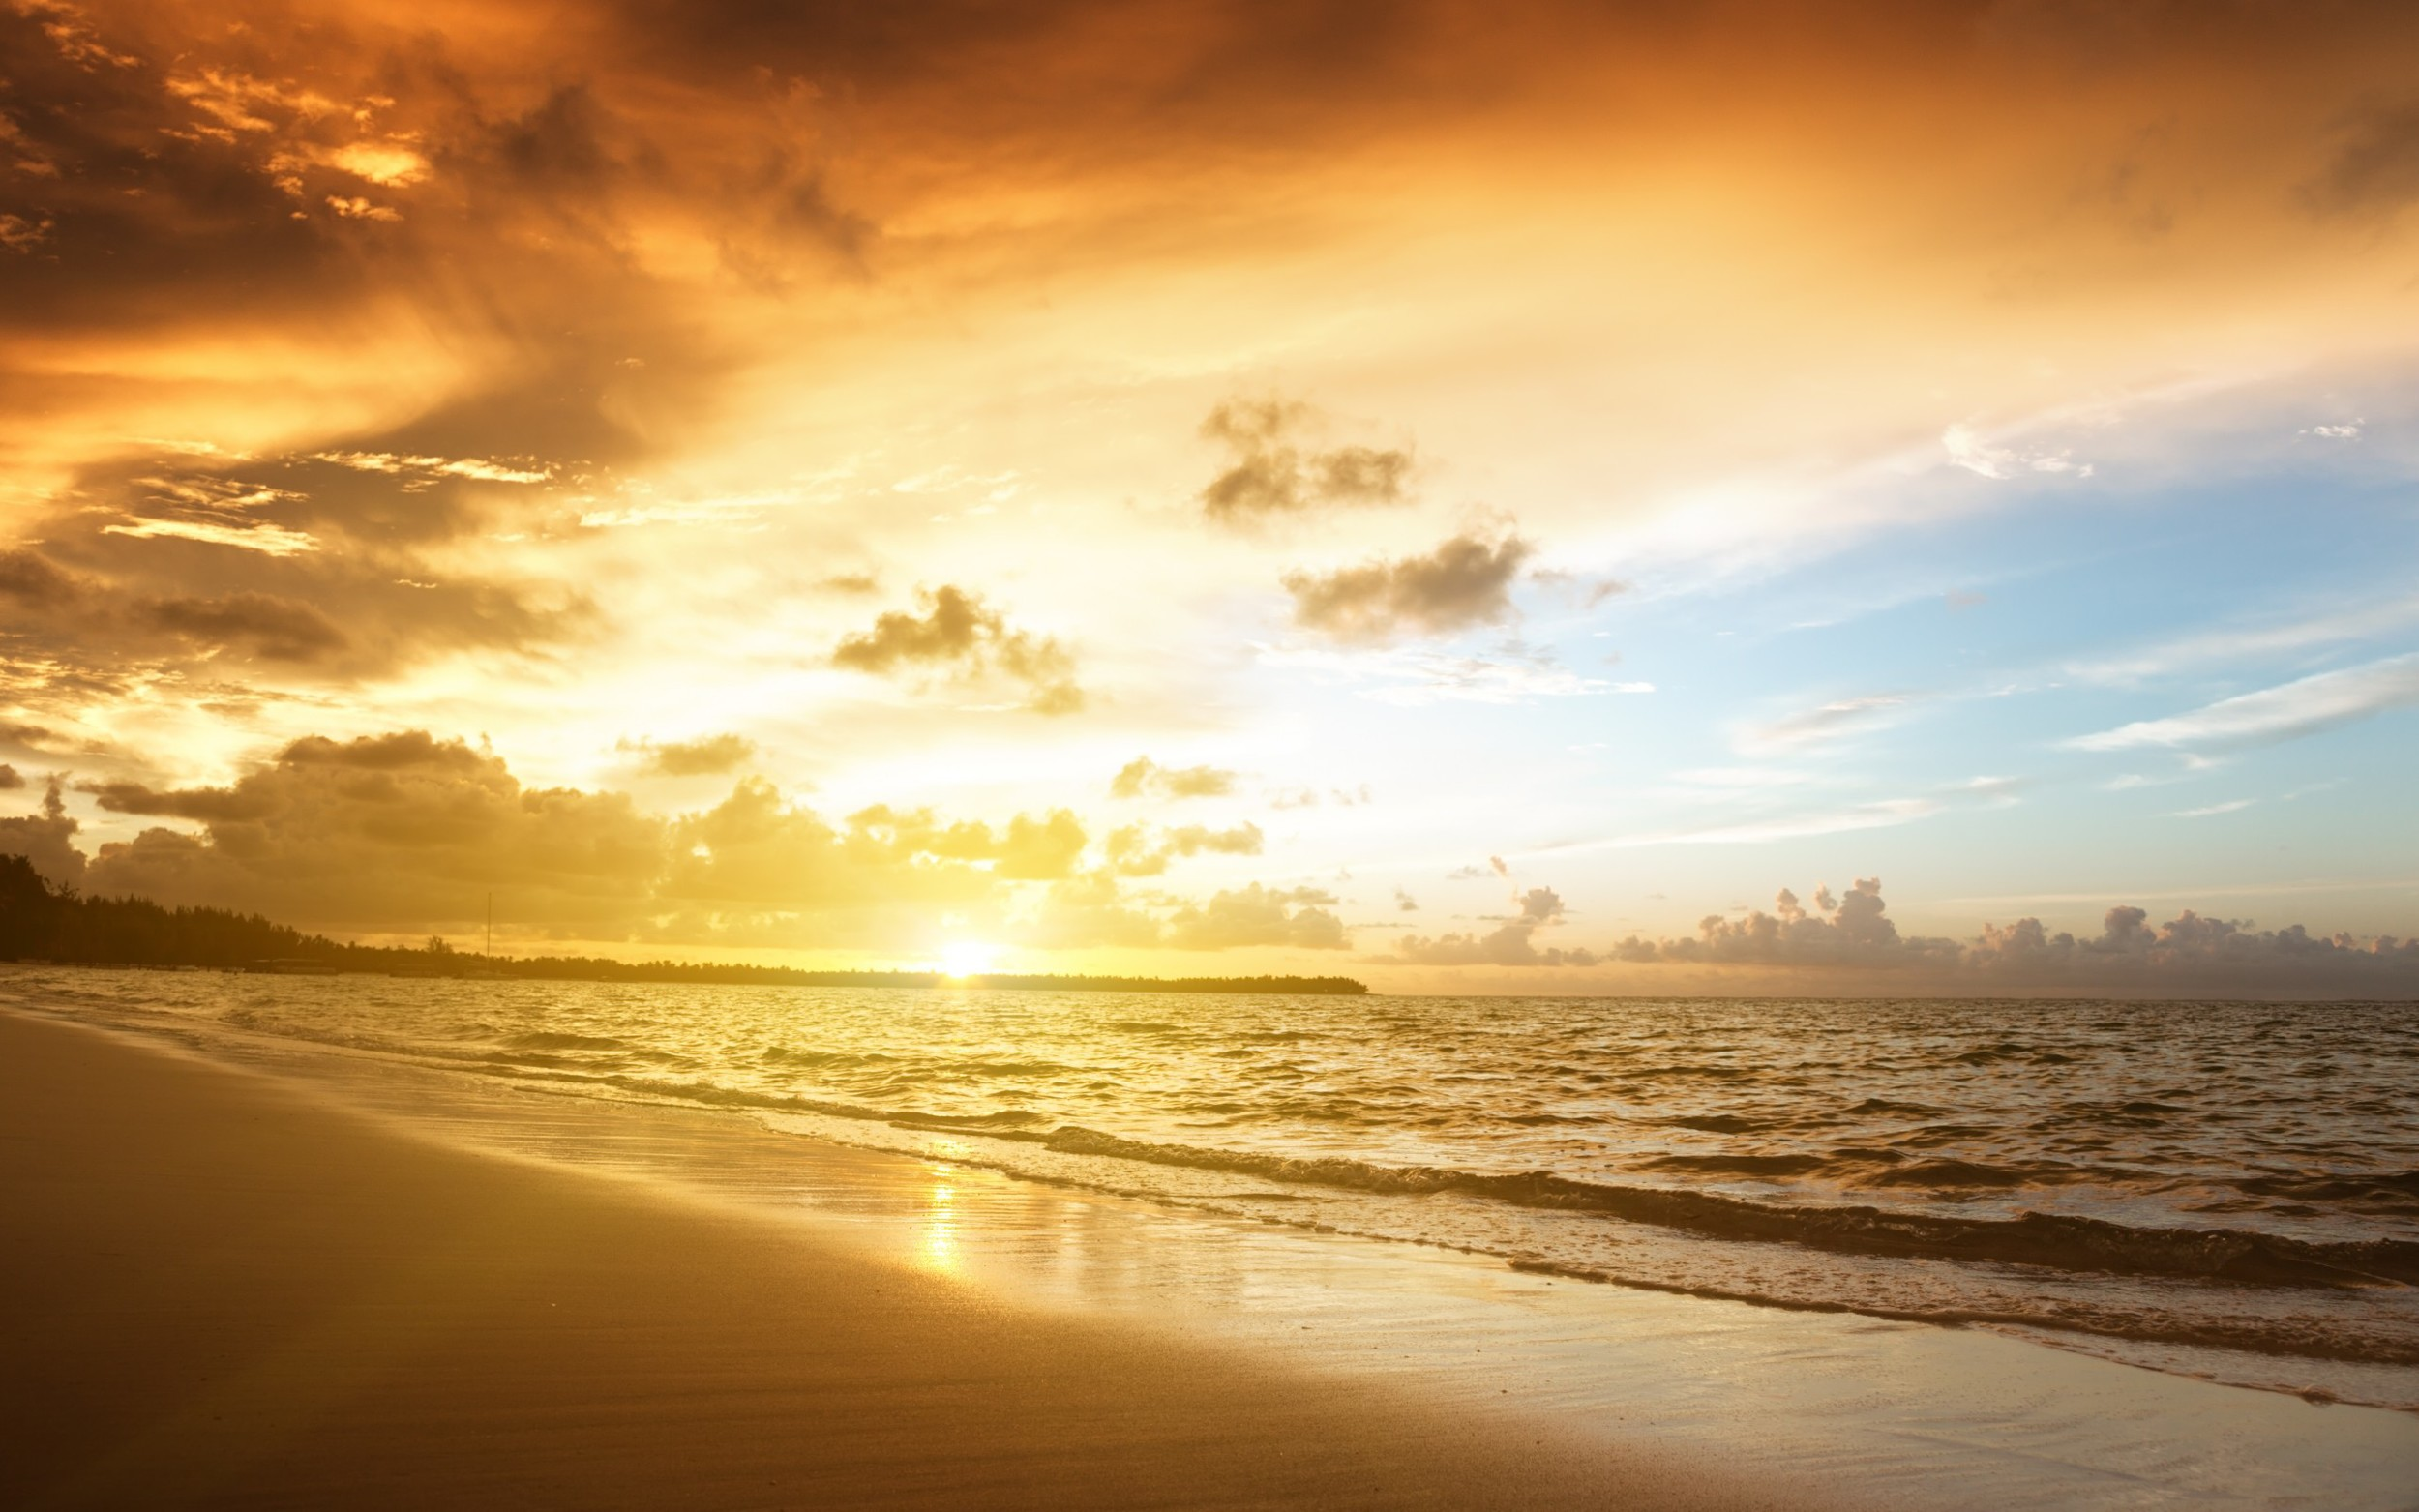 nature_landscape_sky_sand_sea_beach_sunset_2560x1600.jpg